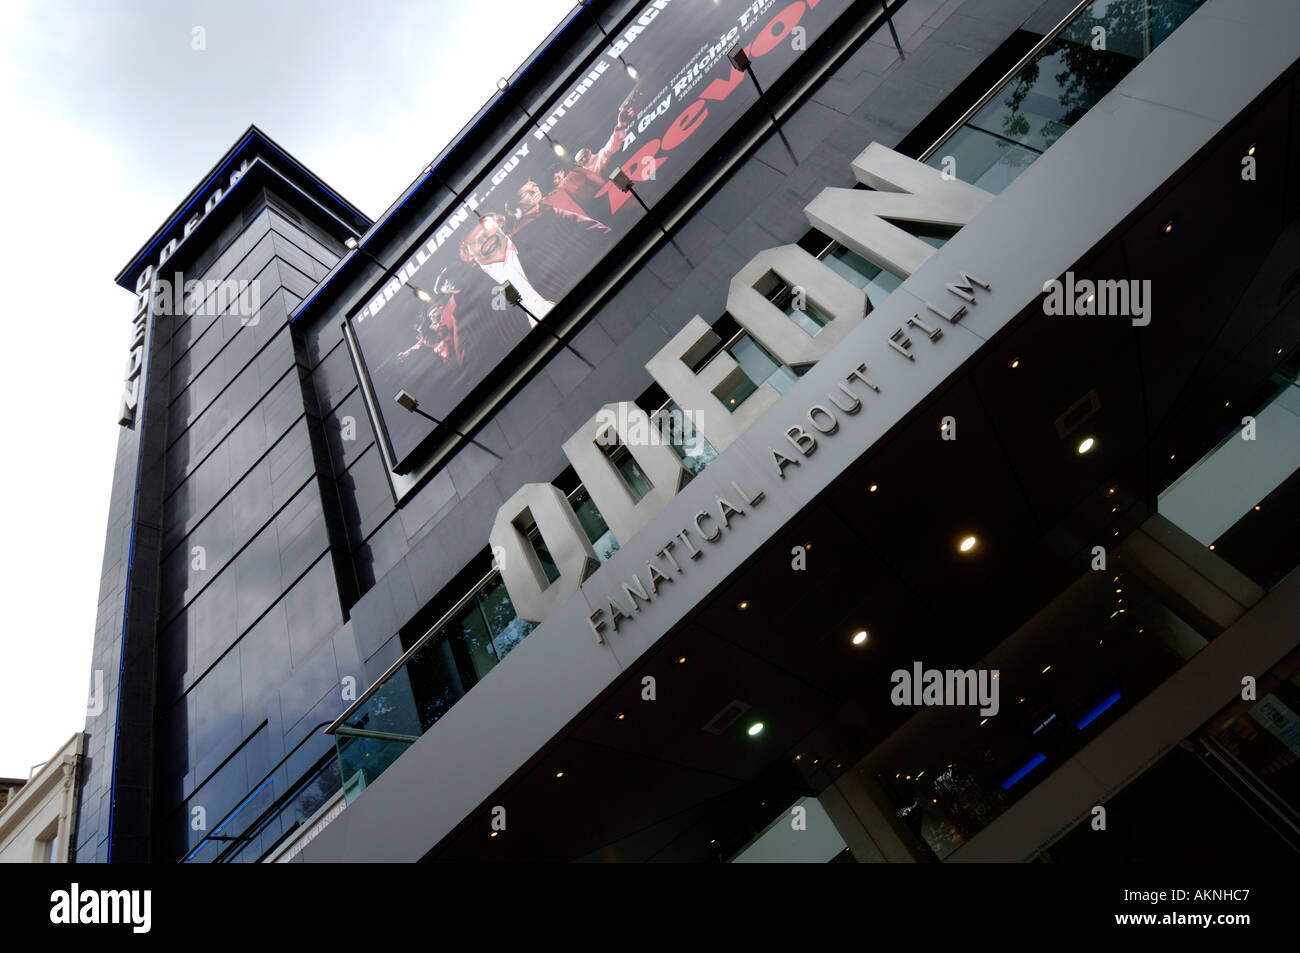 Cinéma Odeon Leicester Square London England UK Photo Stock